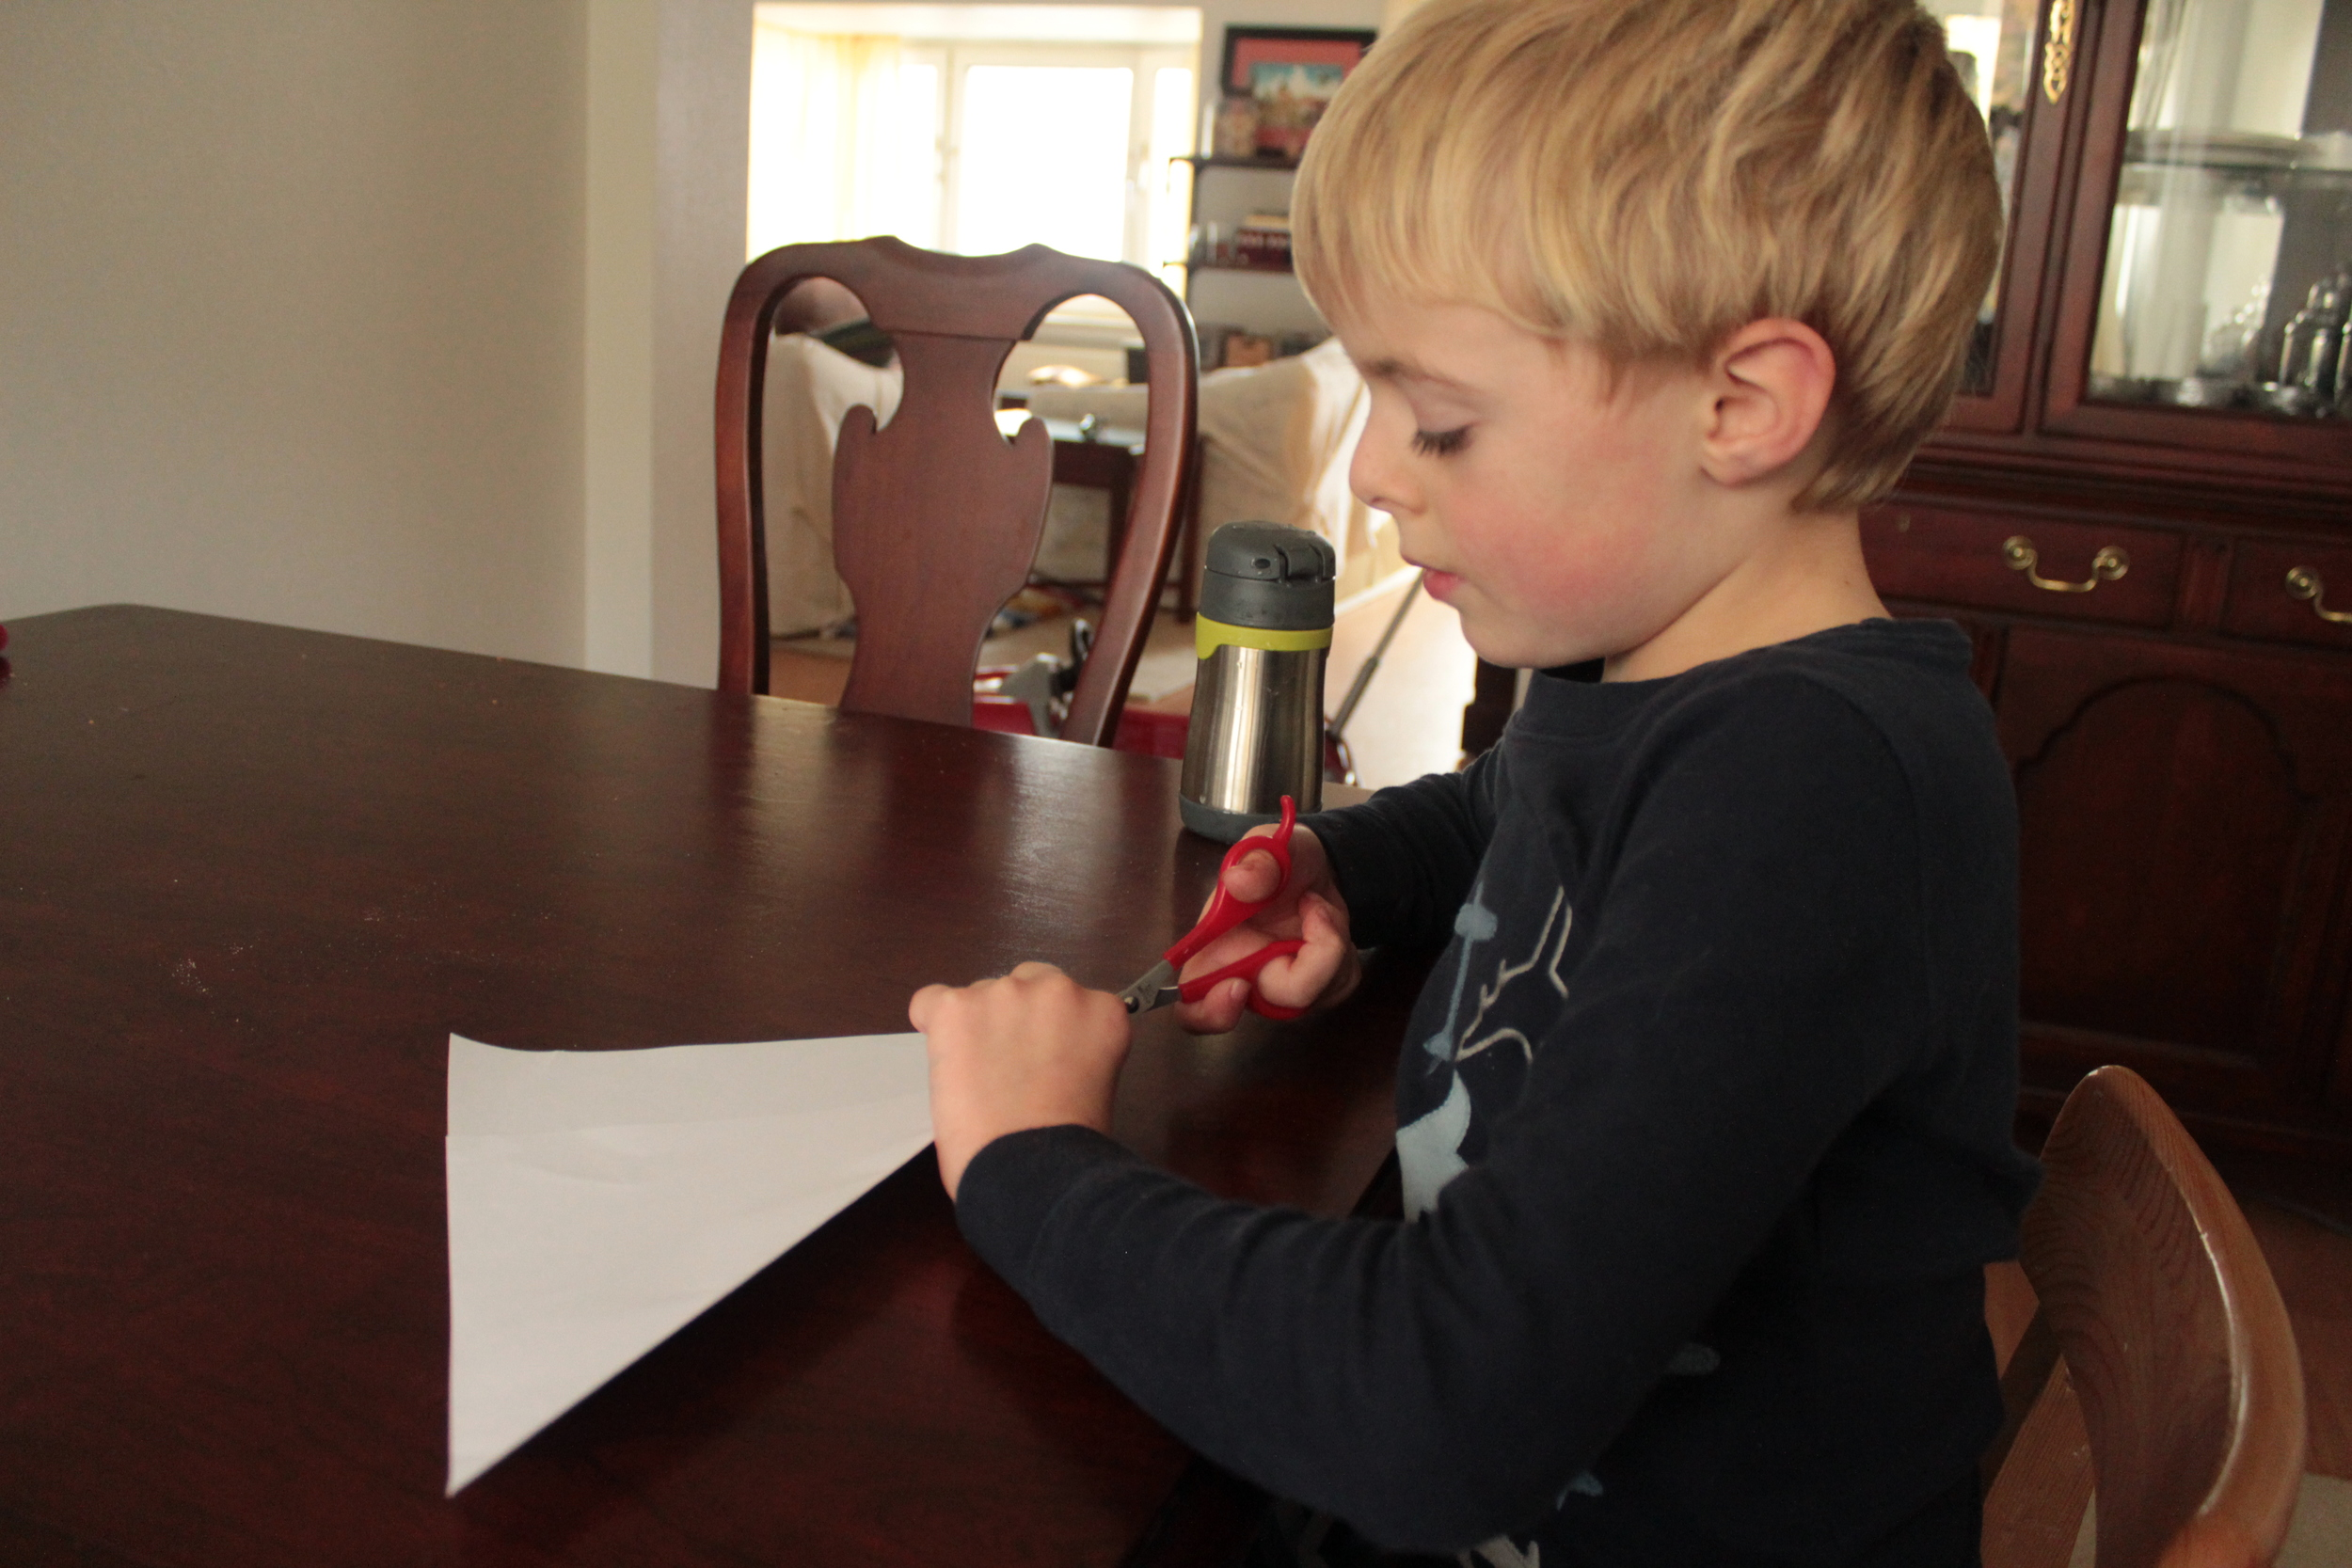 Fold a piece of paper to make a square.